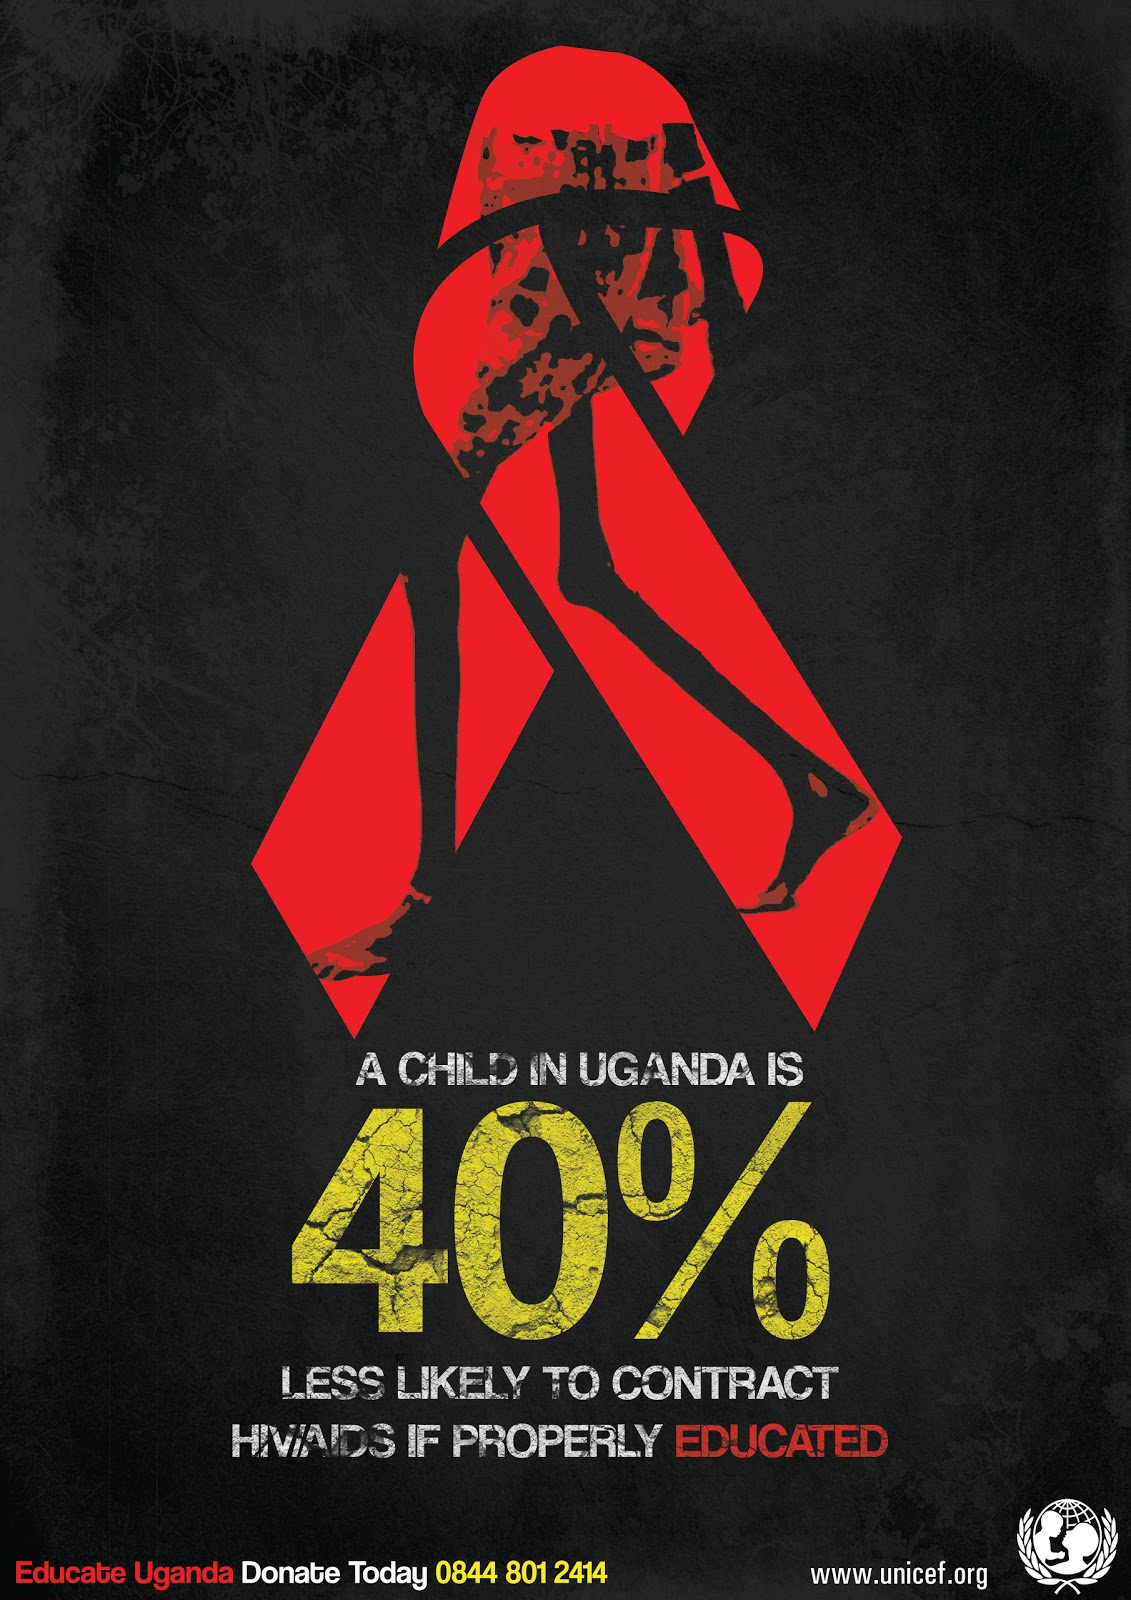 DES 509 MAJOR PROJECTS: final aids poster and billboard design